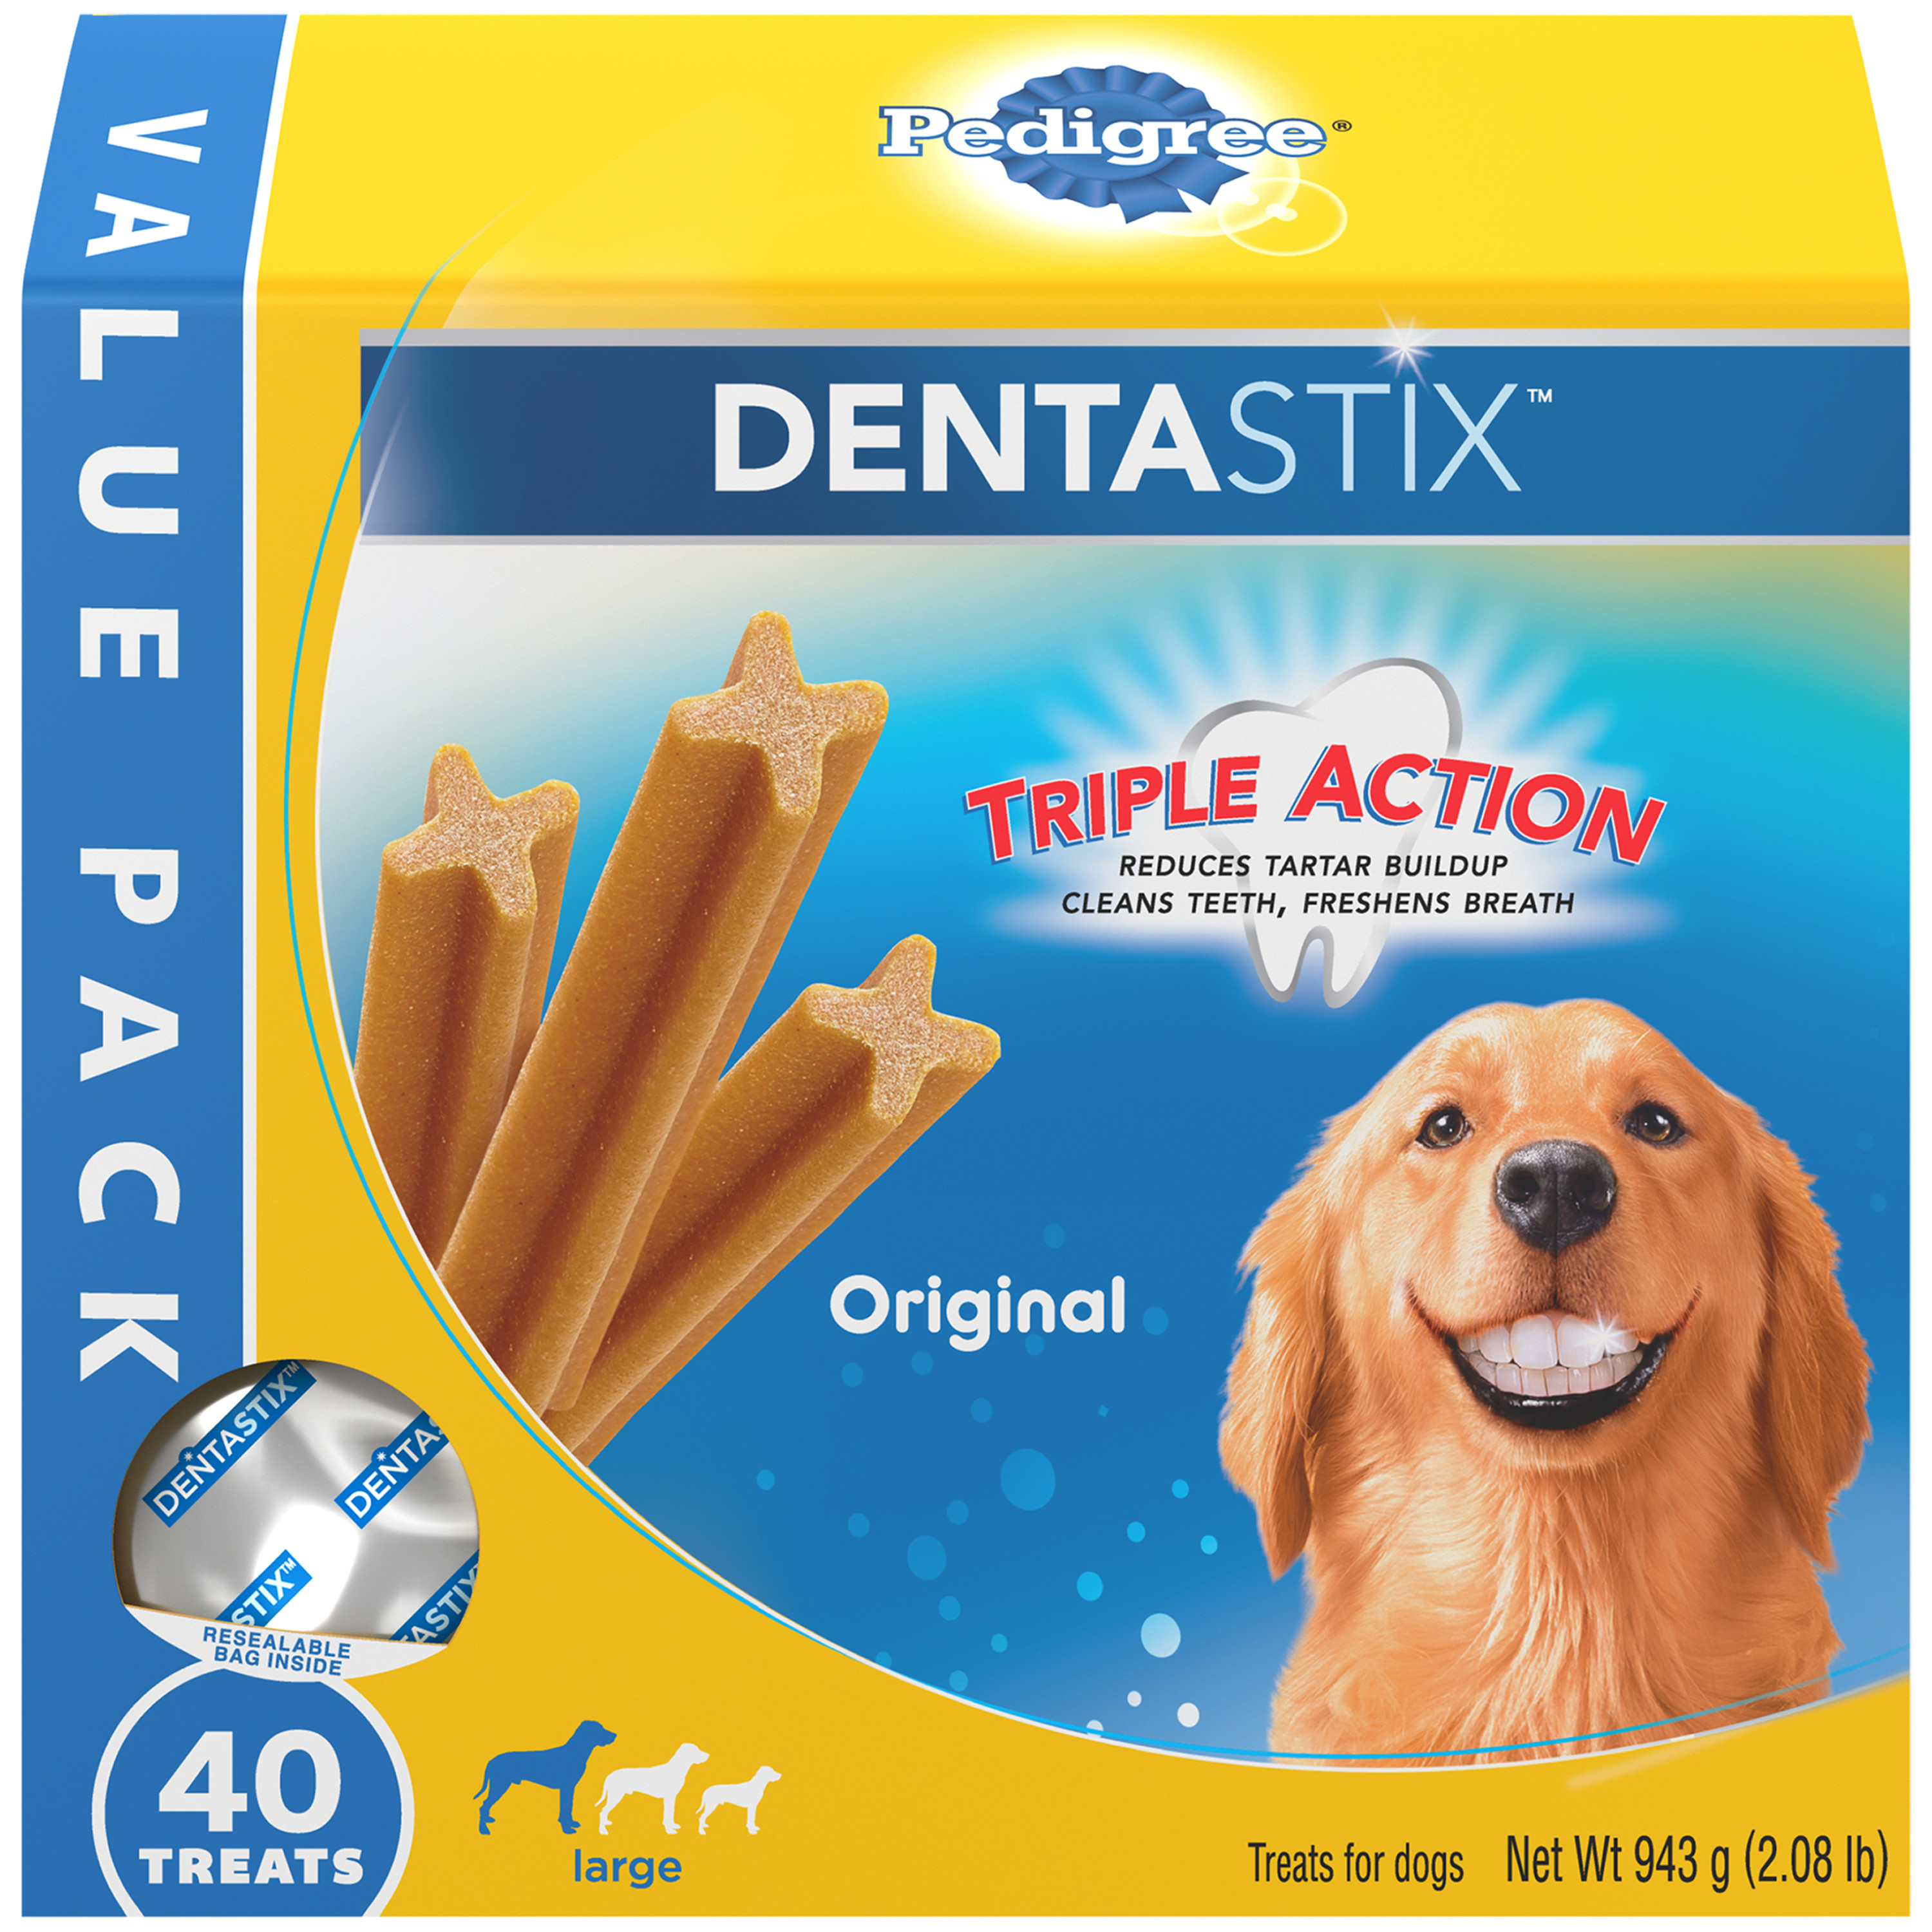 PEDIGREE DENTASTIX Original Large Dog Treats, 2.08 Lb. by Mars Petcare